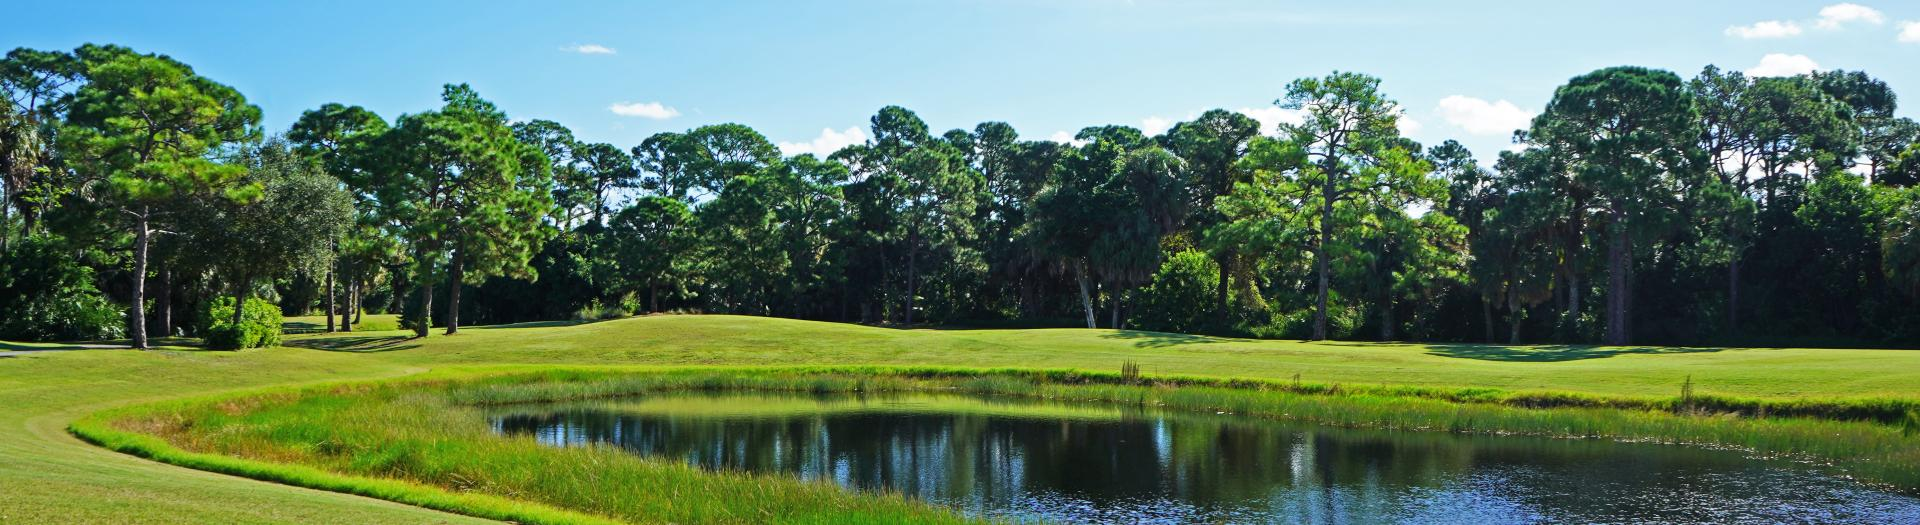 A pond at the Sailfish Sands Golf Course